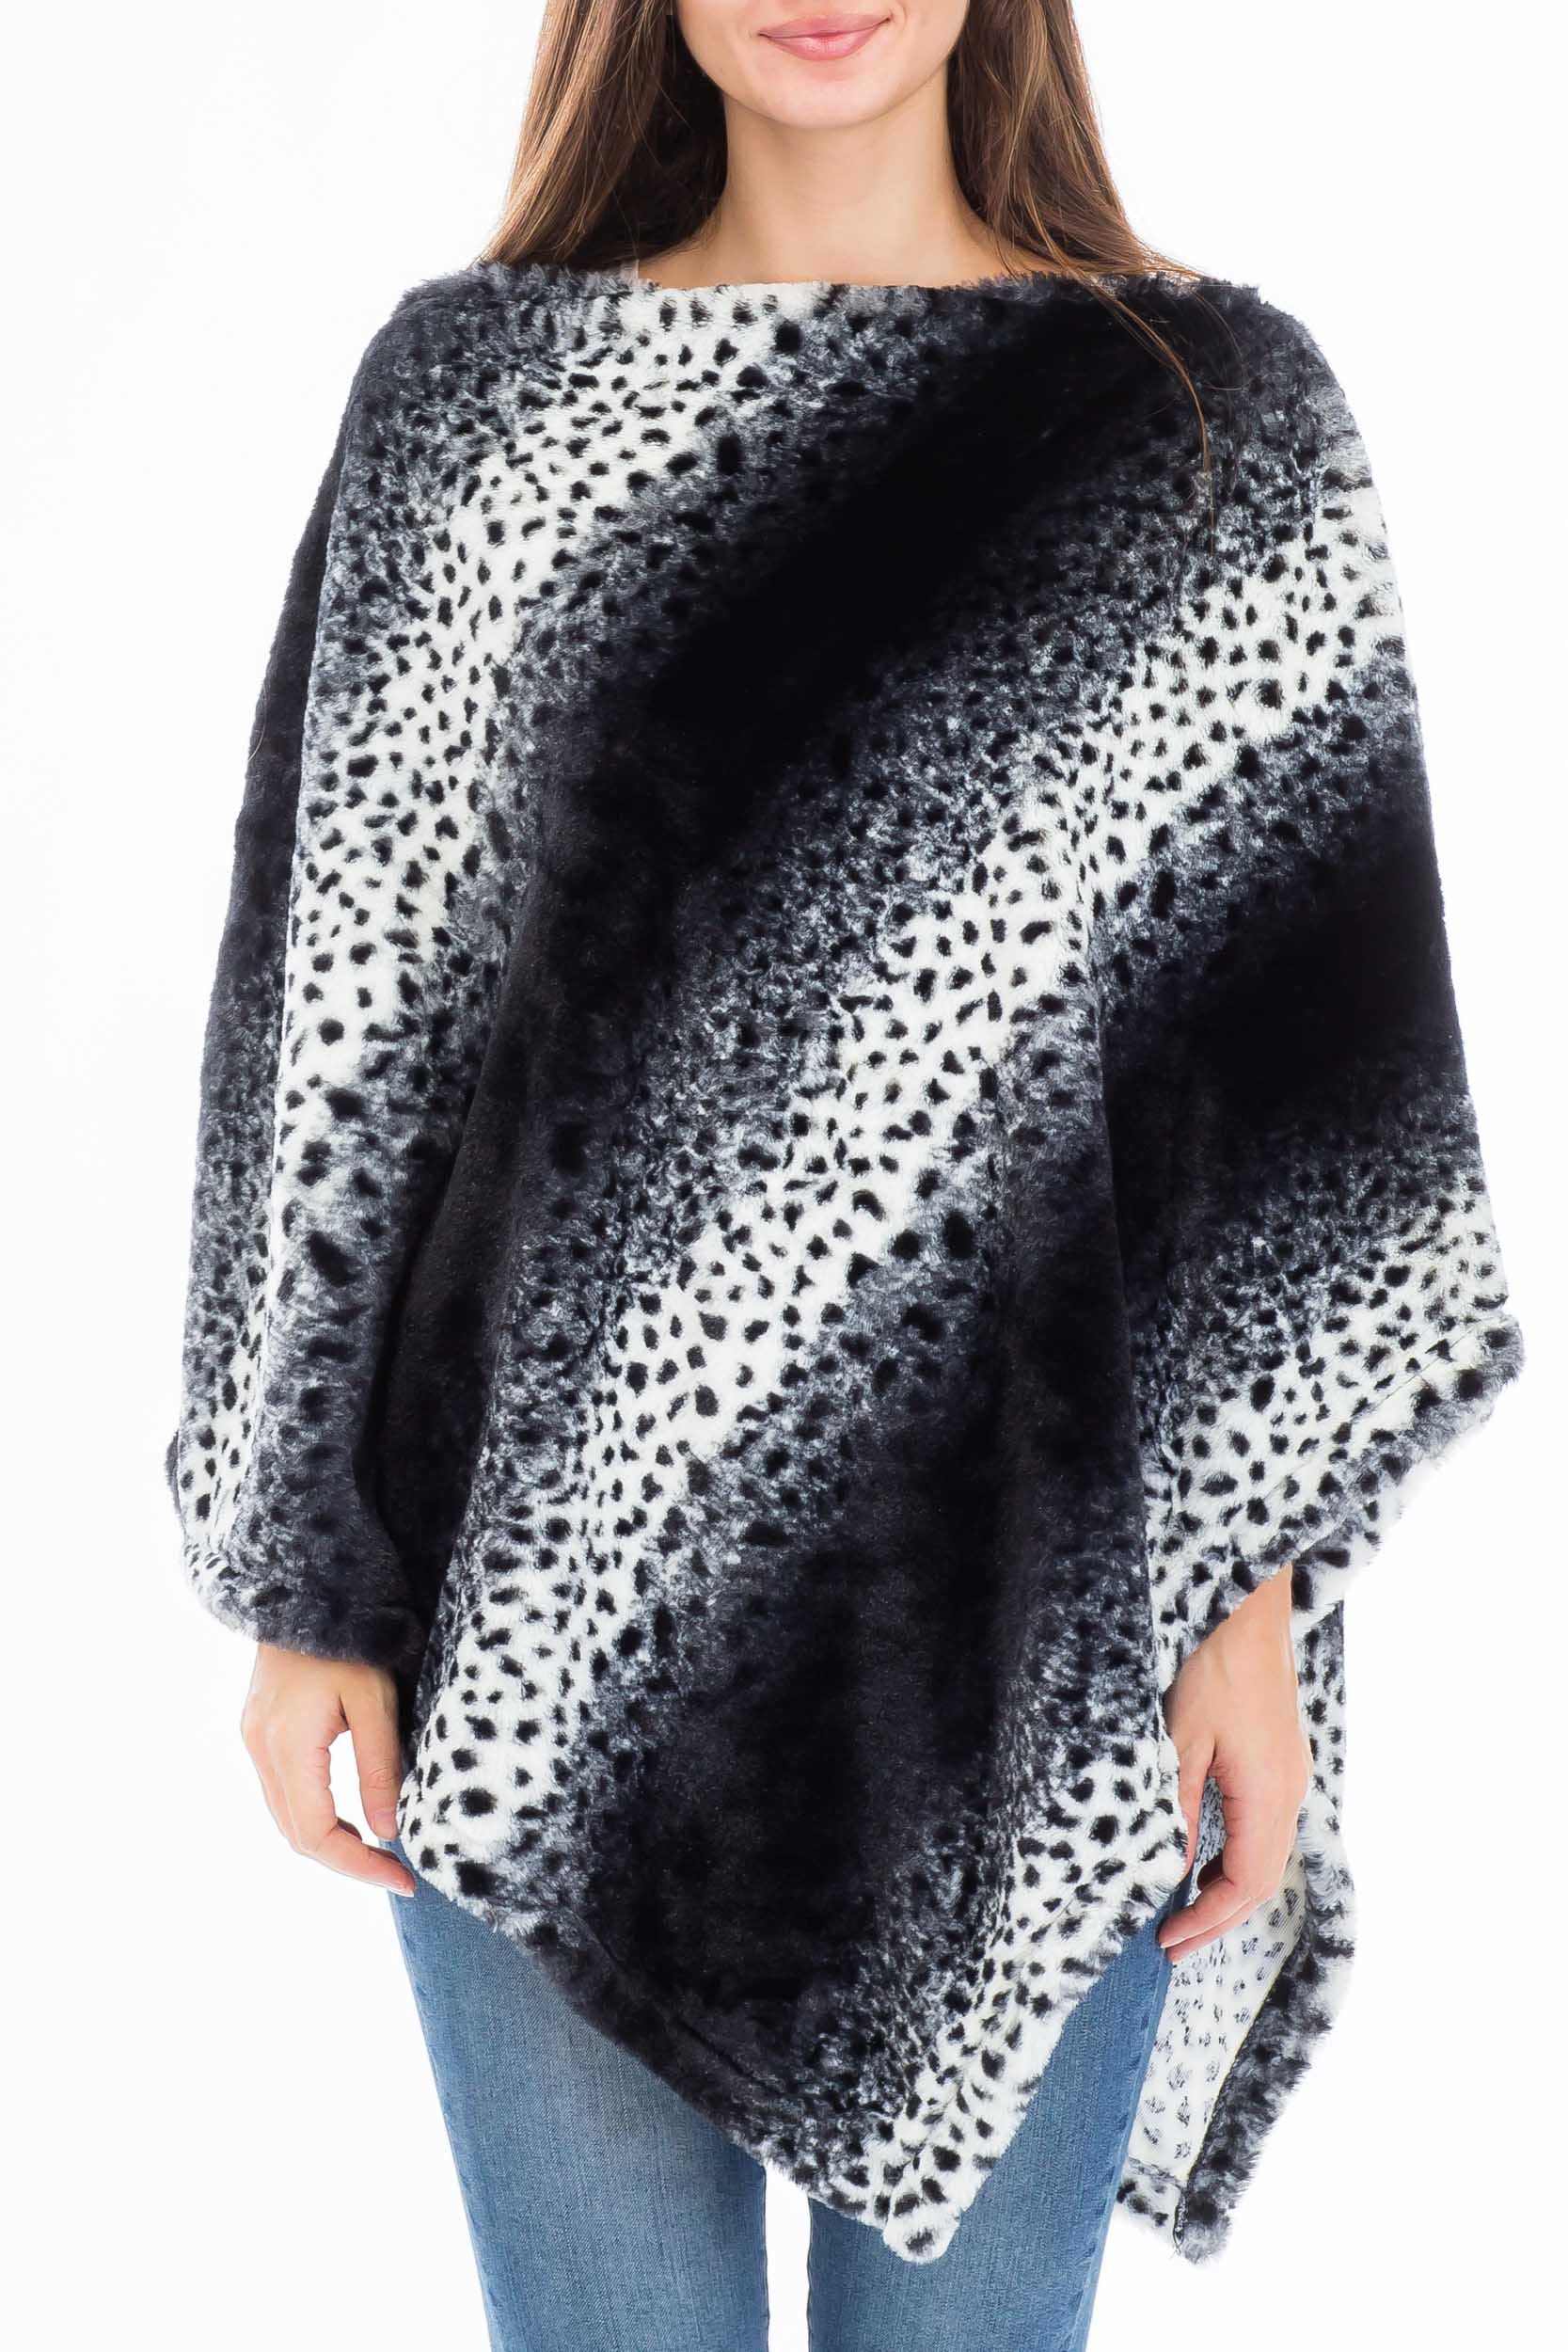 Draped Neckline Leopard Print Super Soft Plush Fur Poncho